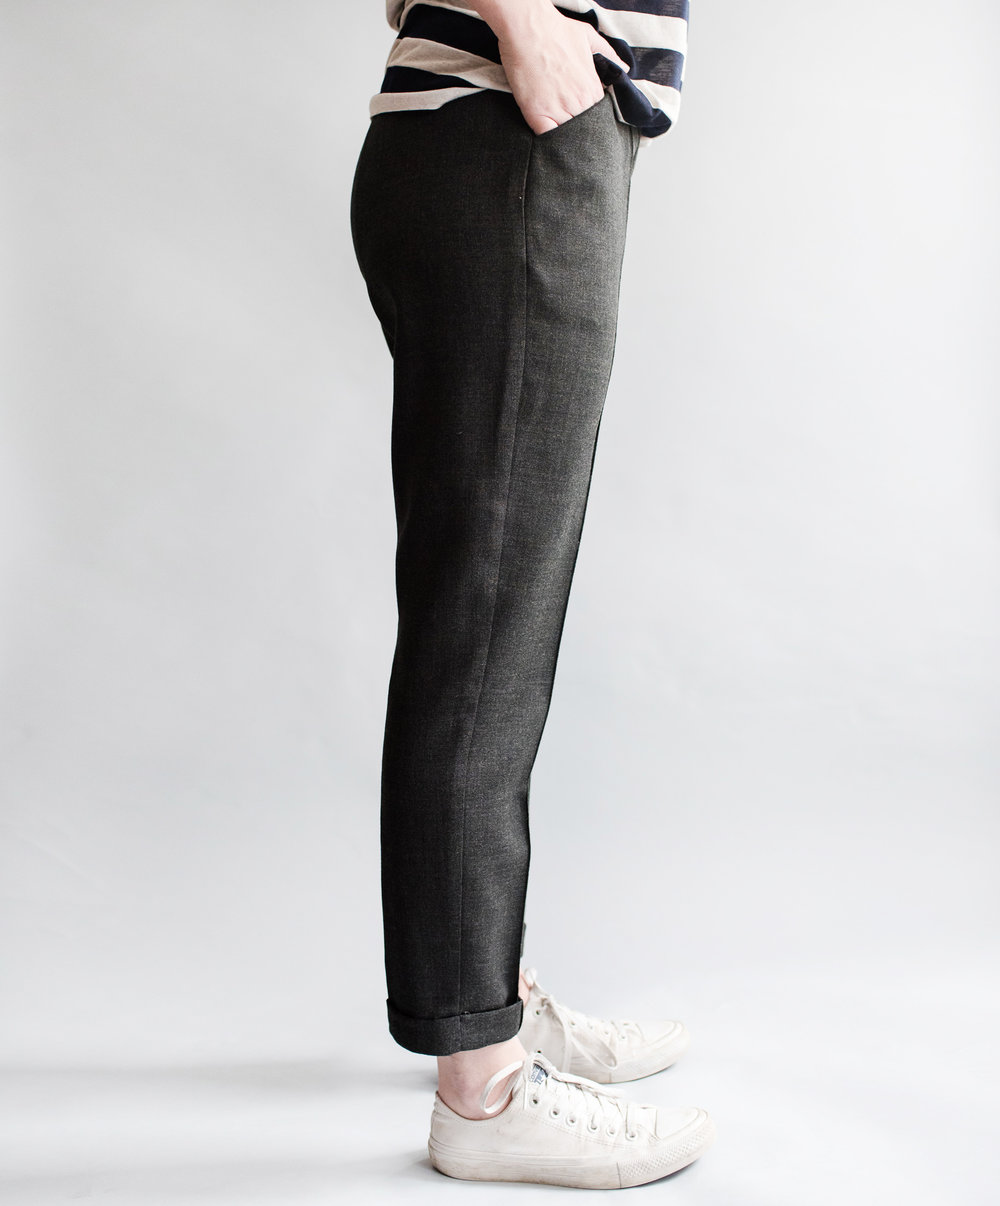 robinson-pdf-sewing-trouser01.jpg